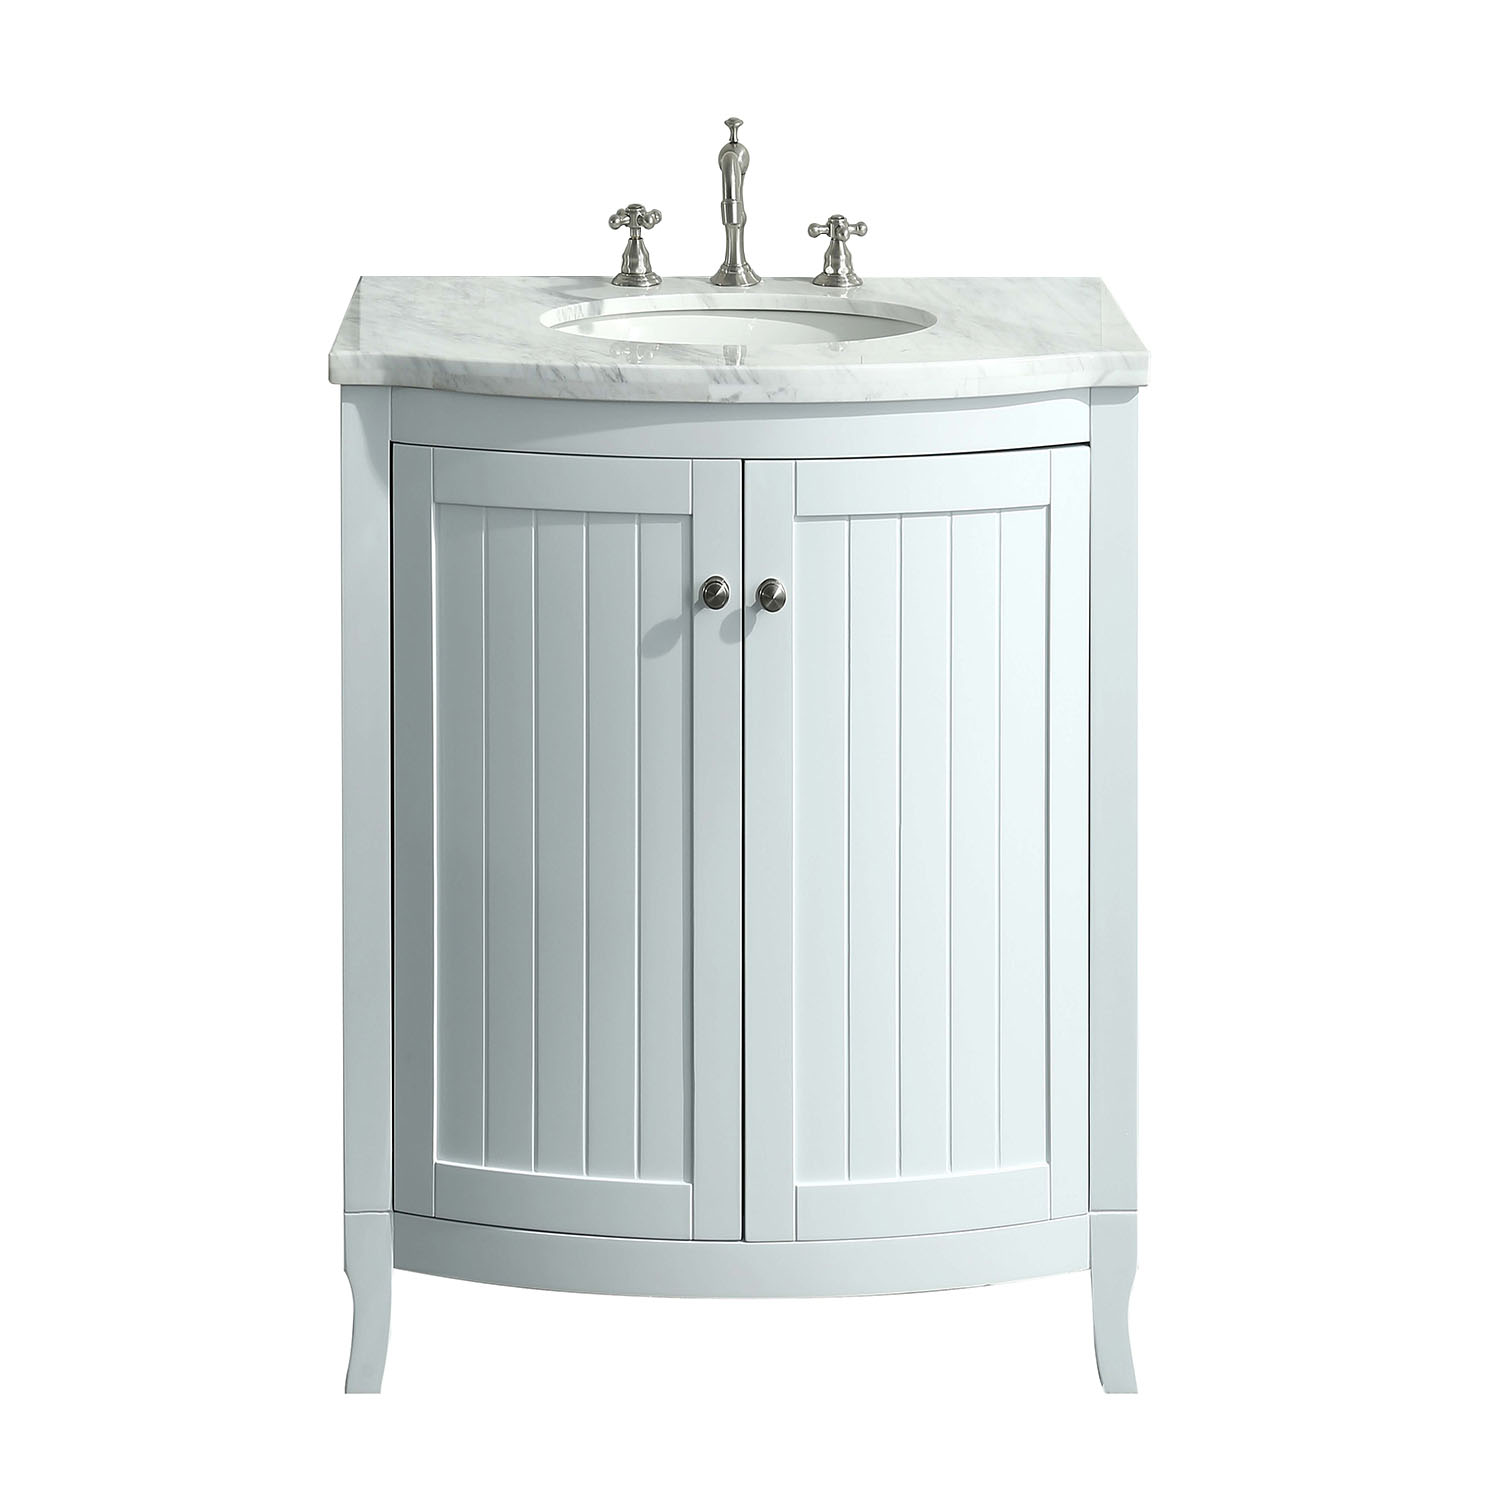 "EVVN04 24WH A Main - Eviva Odessa Zinx+ 24"" White Bathroom Vanity with White Carrera"